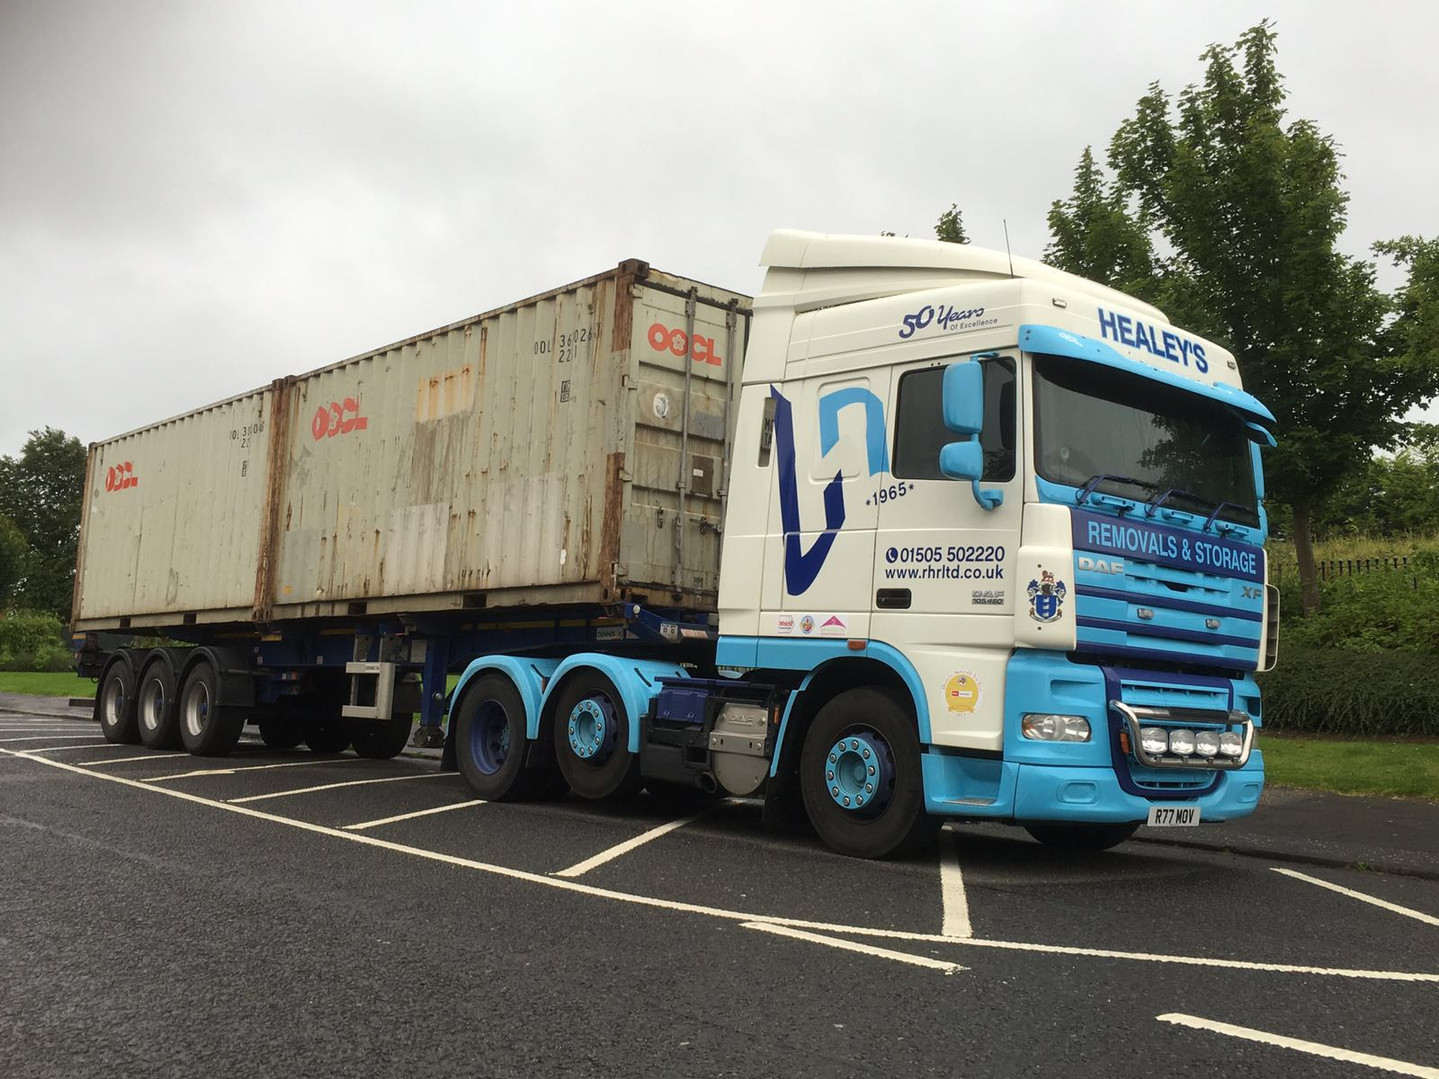 40ft container on Articulated Lorry